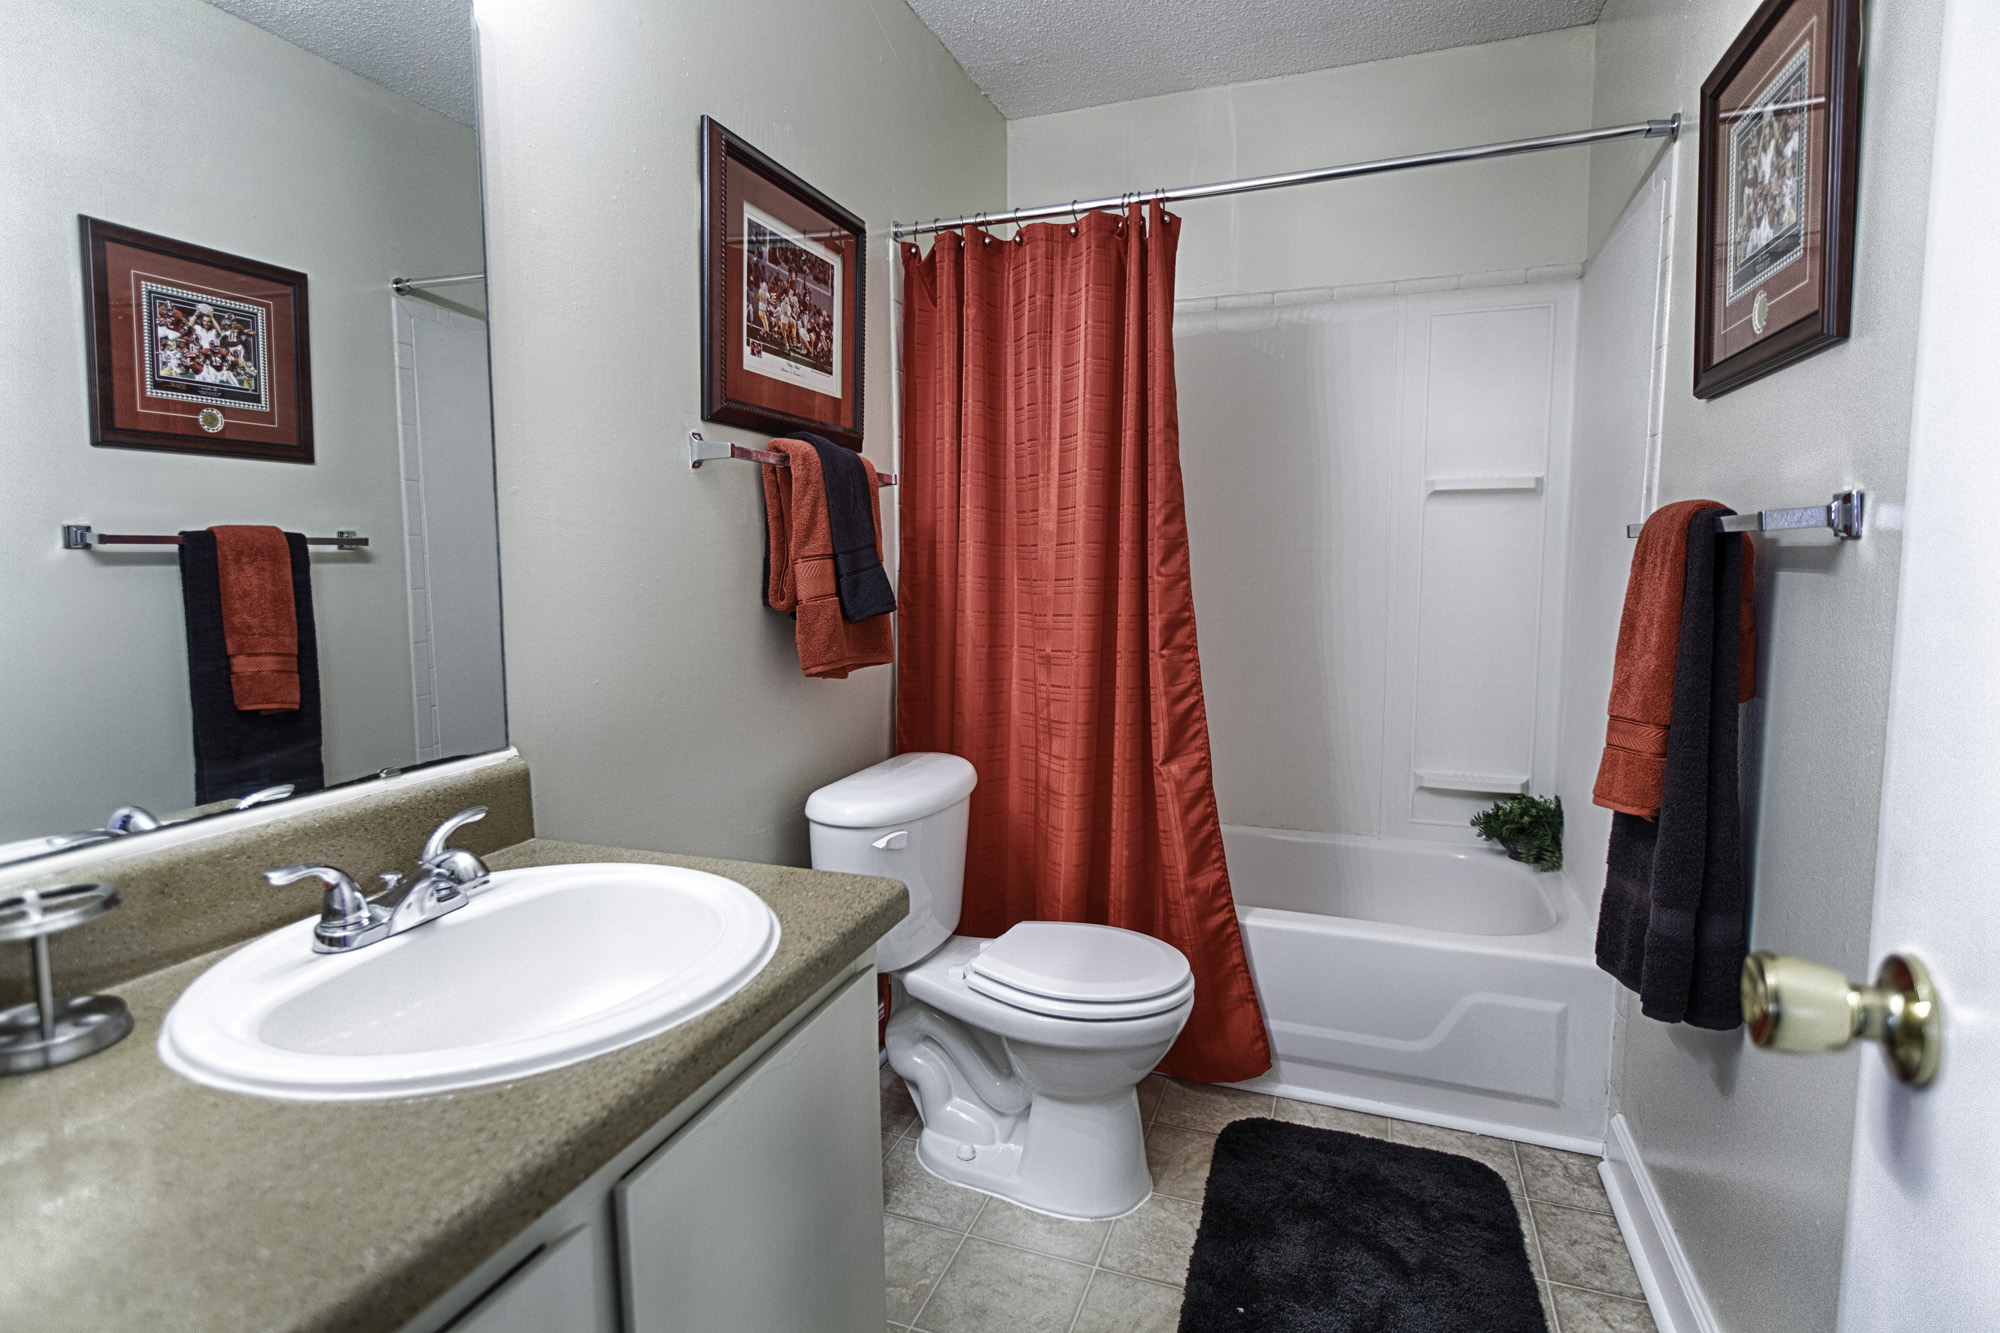 Fountain Square Apartments - uCribs